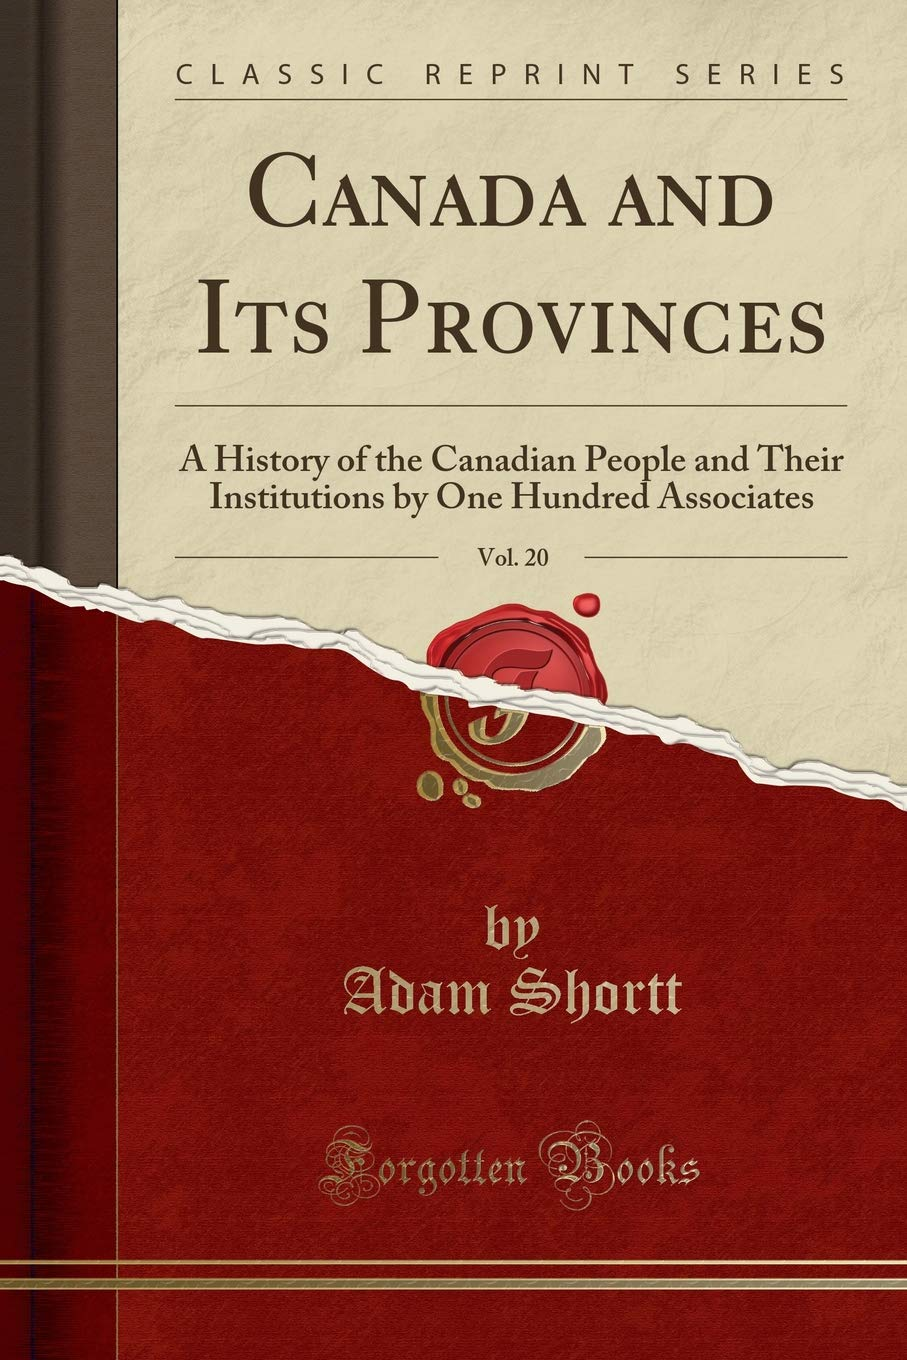 Download Canada and Its Provinces, Vol. 20: A History of the Canadian People and Their Institutions by One Hundred Associates (Classic Reprint) PDF